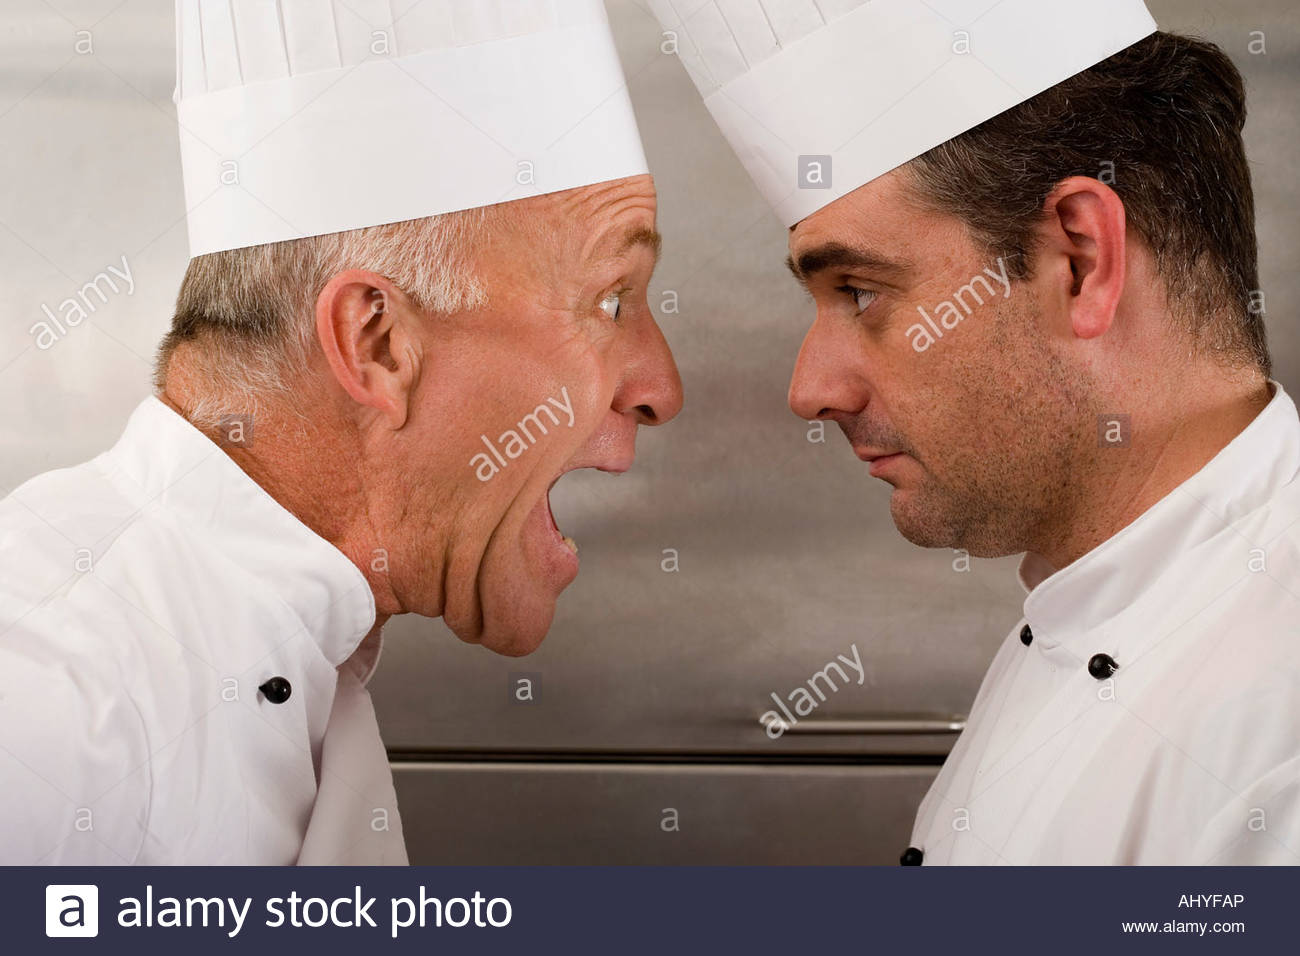 Angry senior chef de crier en chef junior cuisine commerciale face à face close up Photo Stock